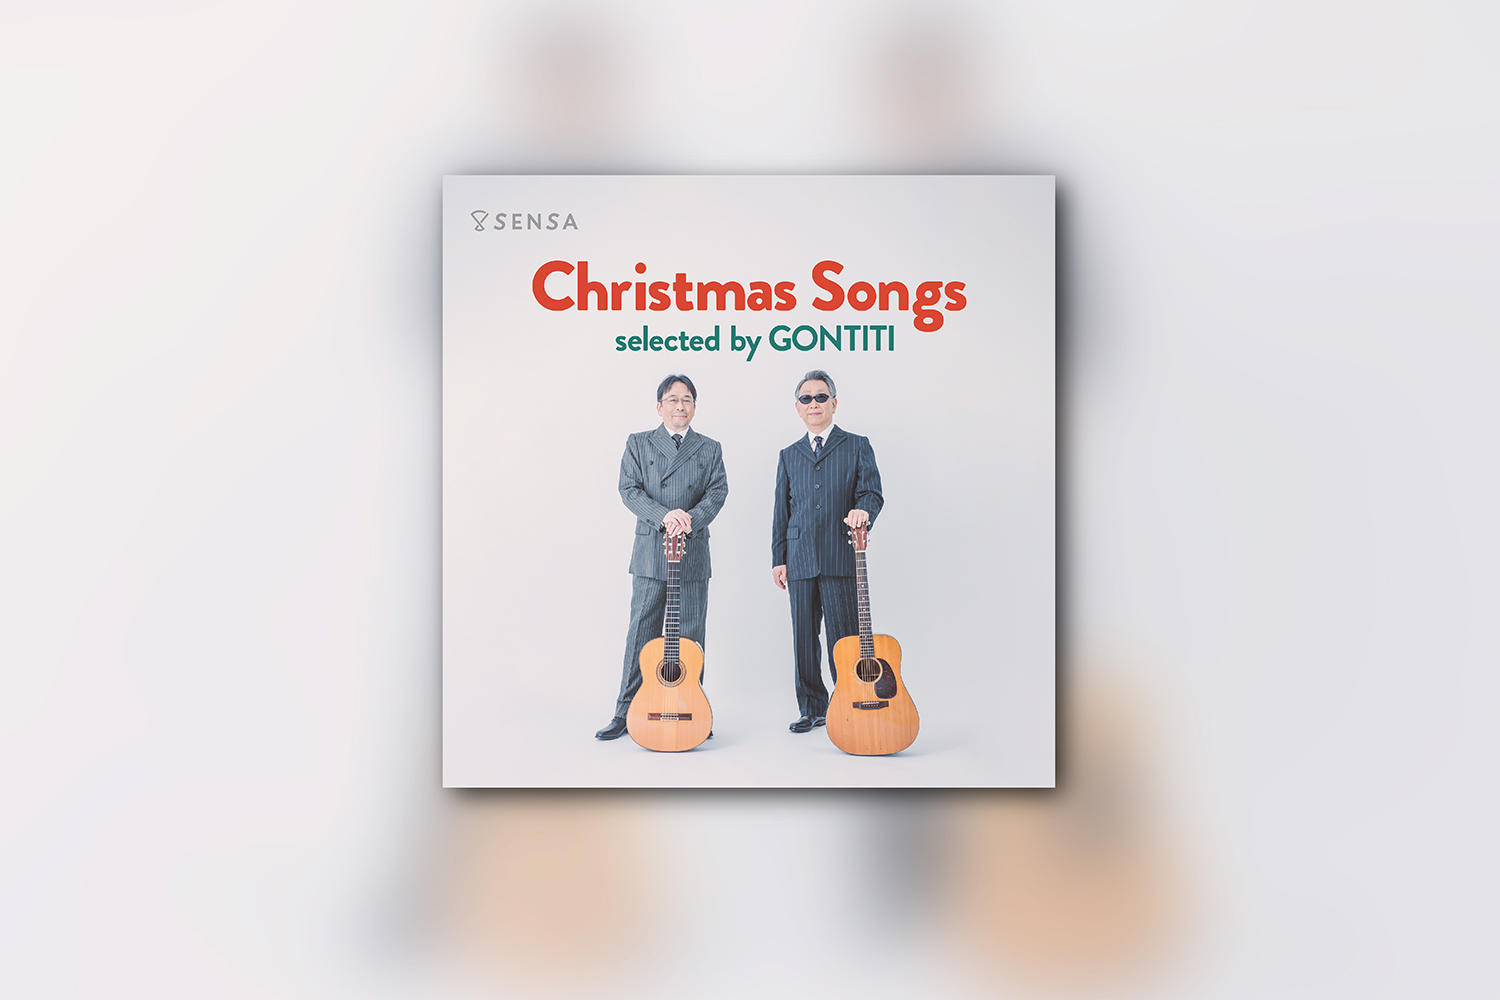 Christmas Songs selected by GONTITI